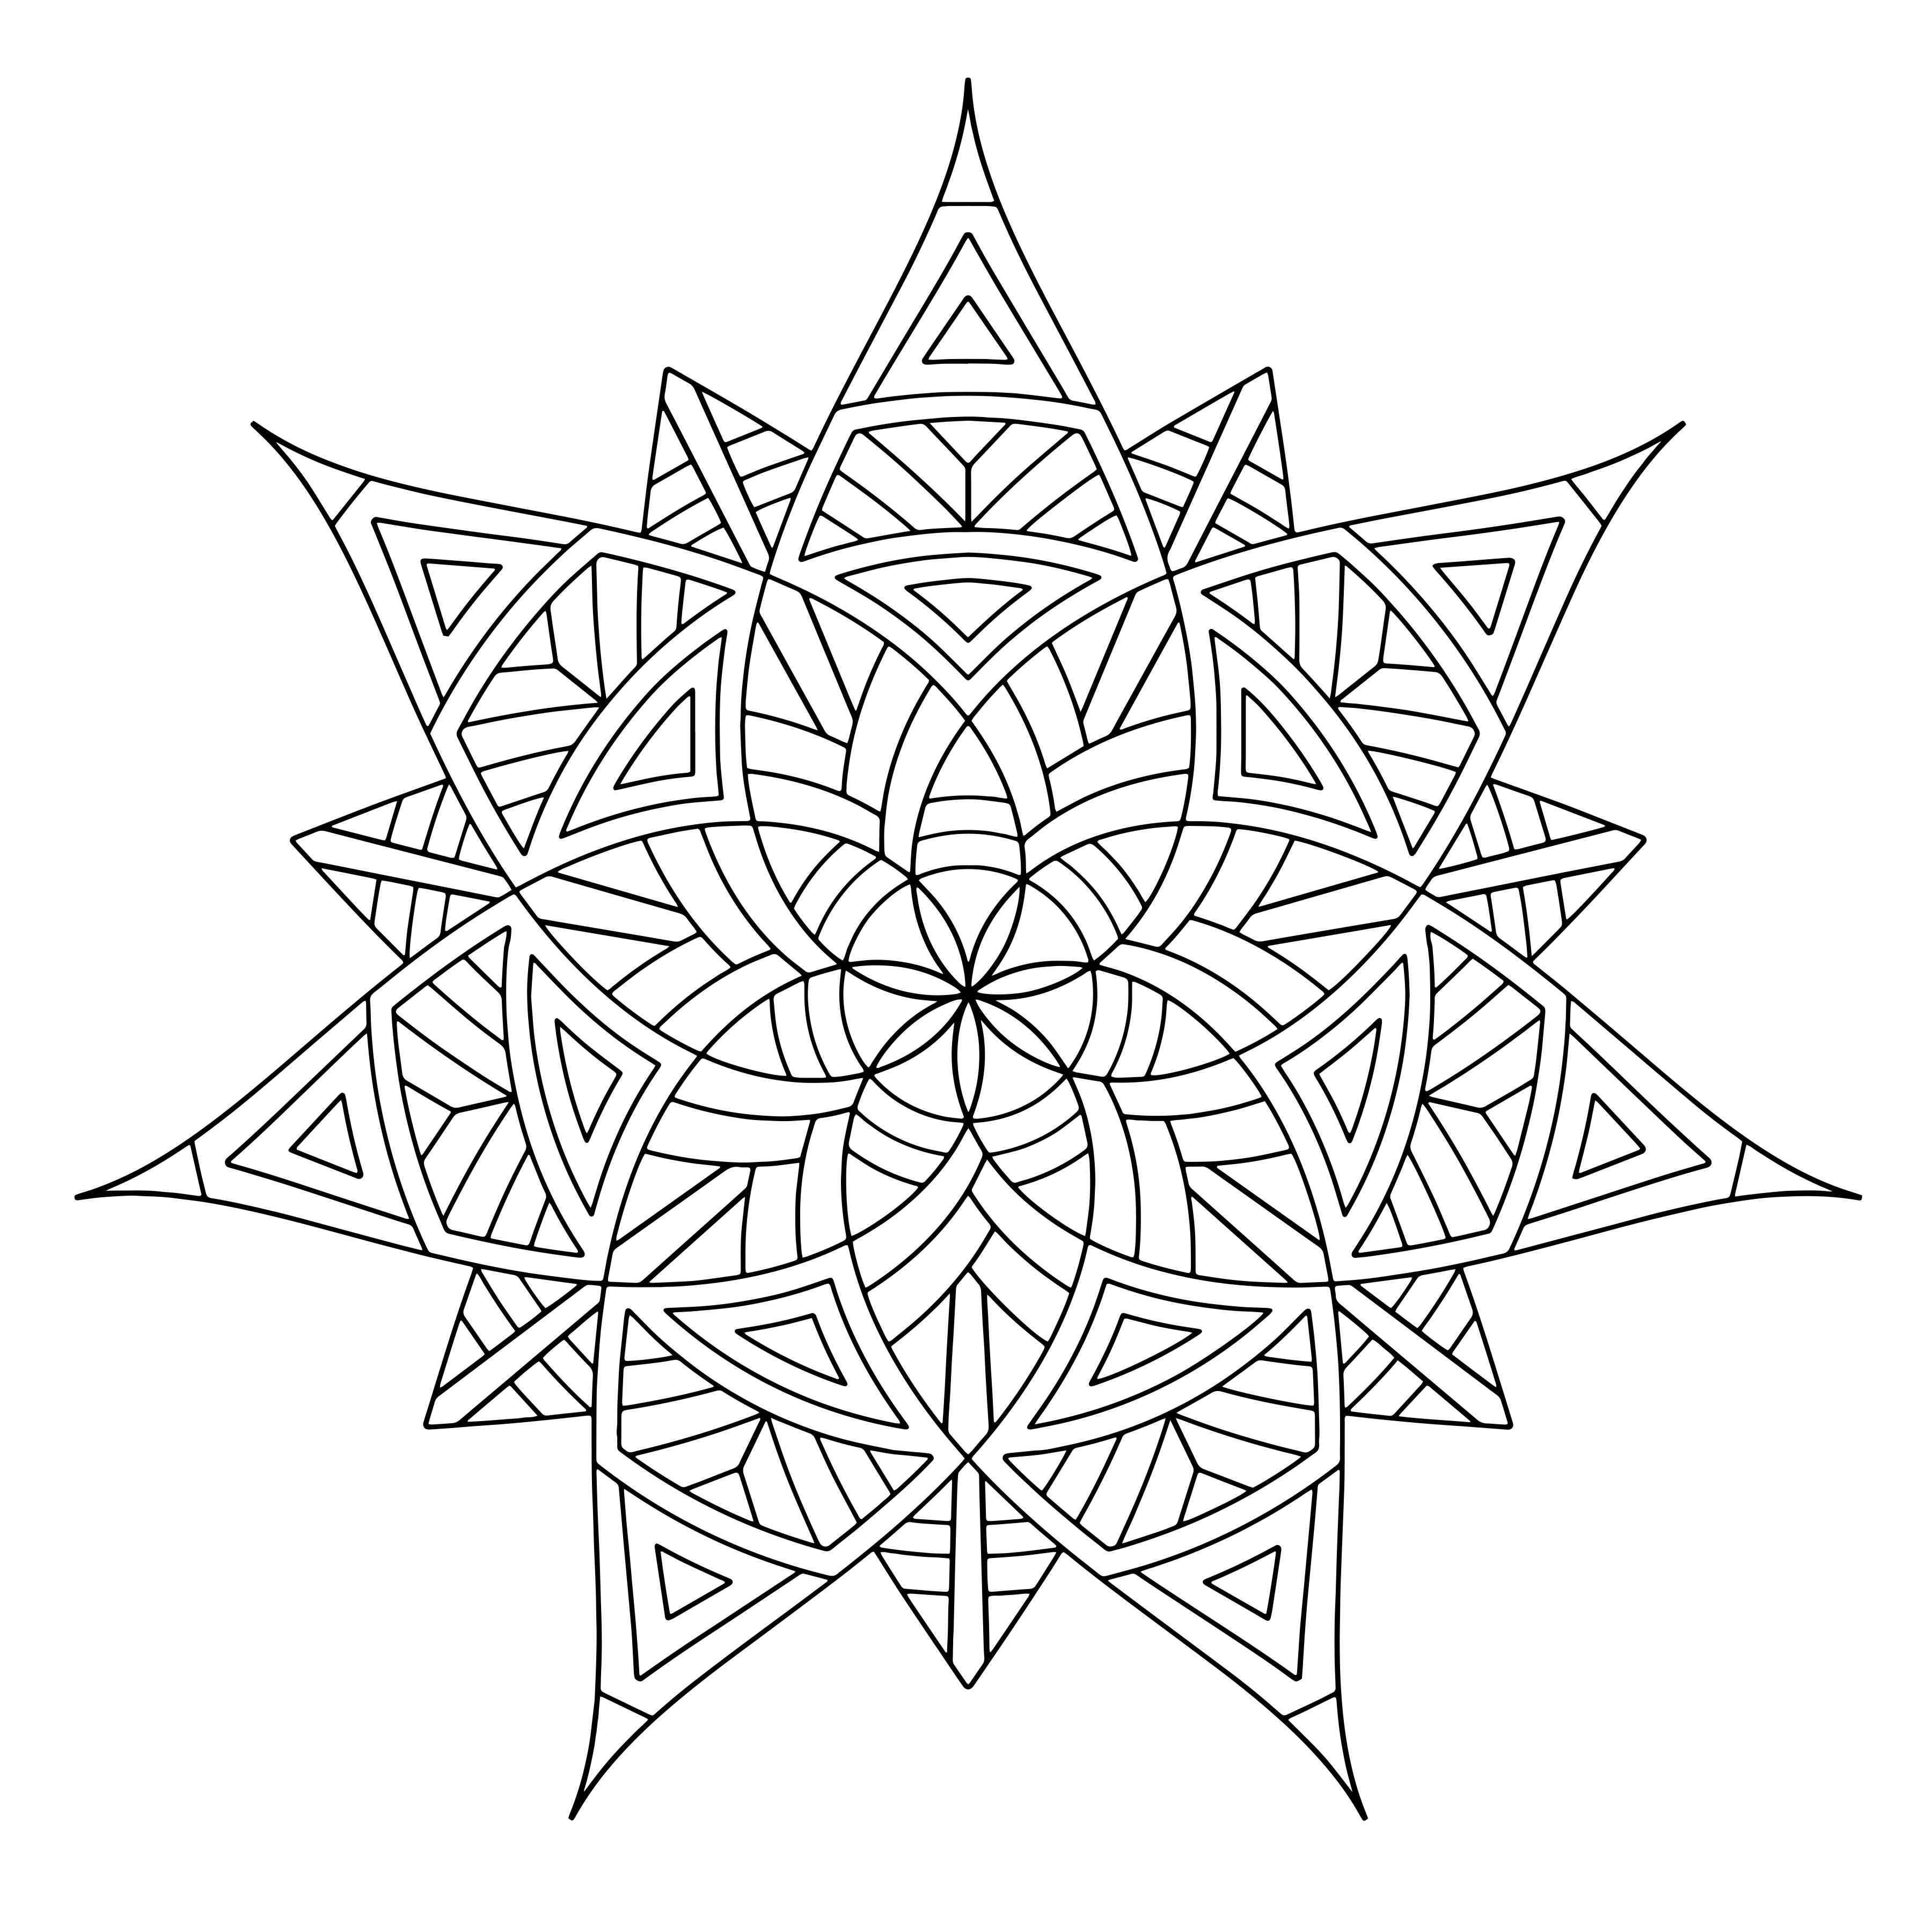 3600x3600 Free Printable Geometric Coloring Pages For Adults